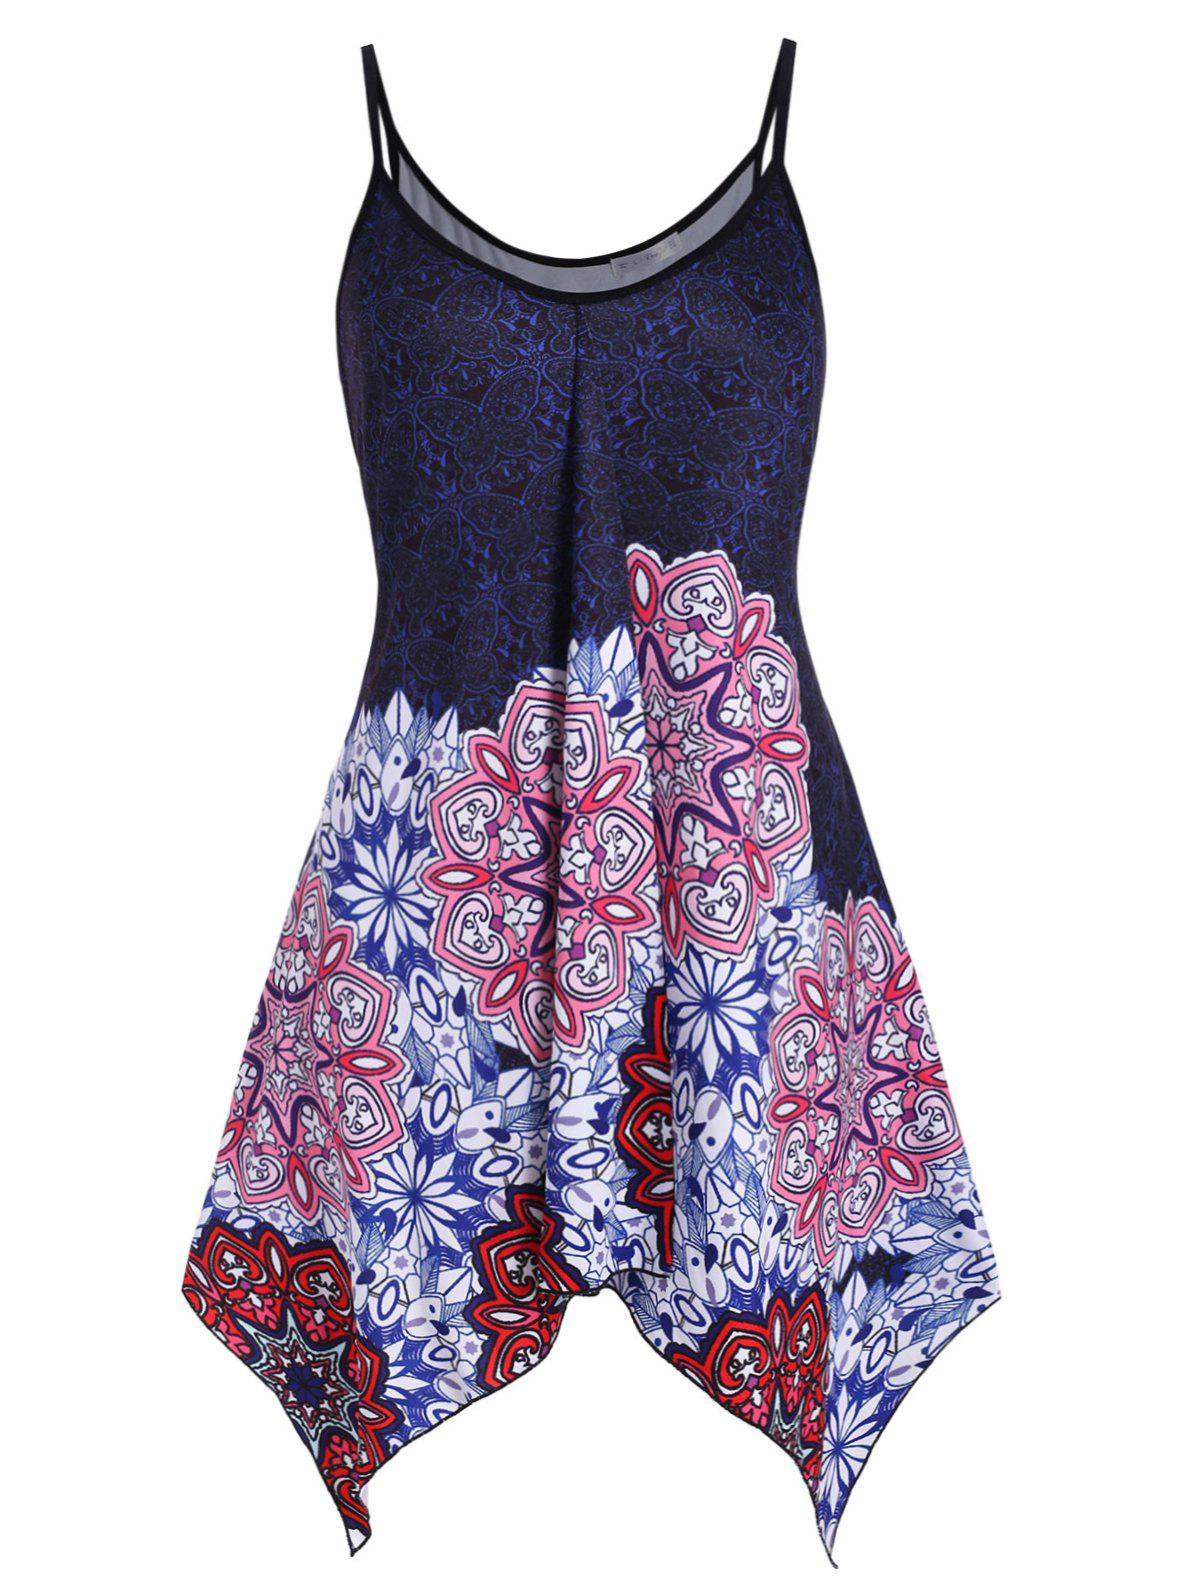 Butterfly Printed Handkerchief Longline Plus Size Cami Top - BLUE 3X